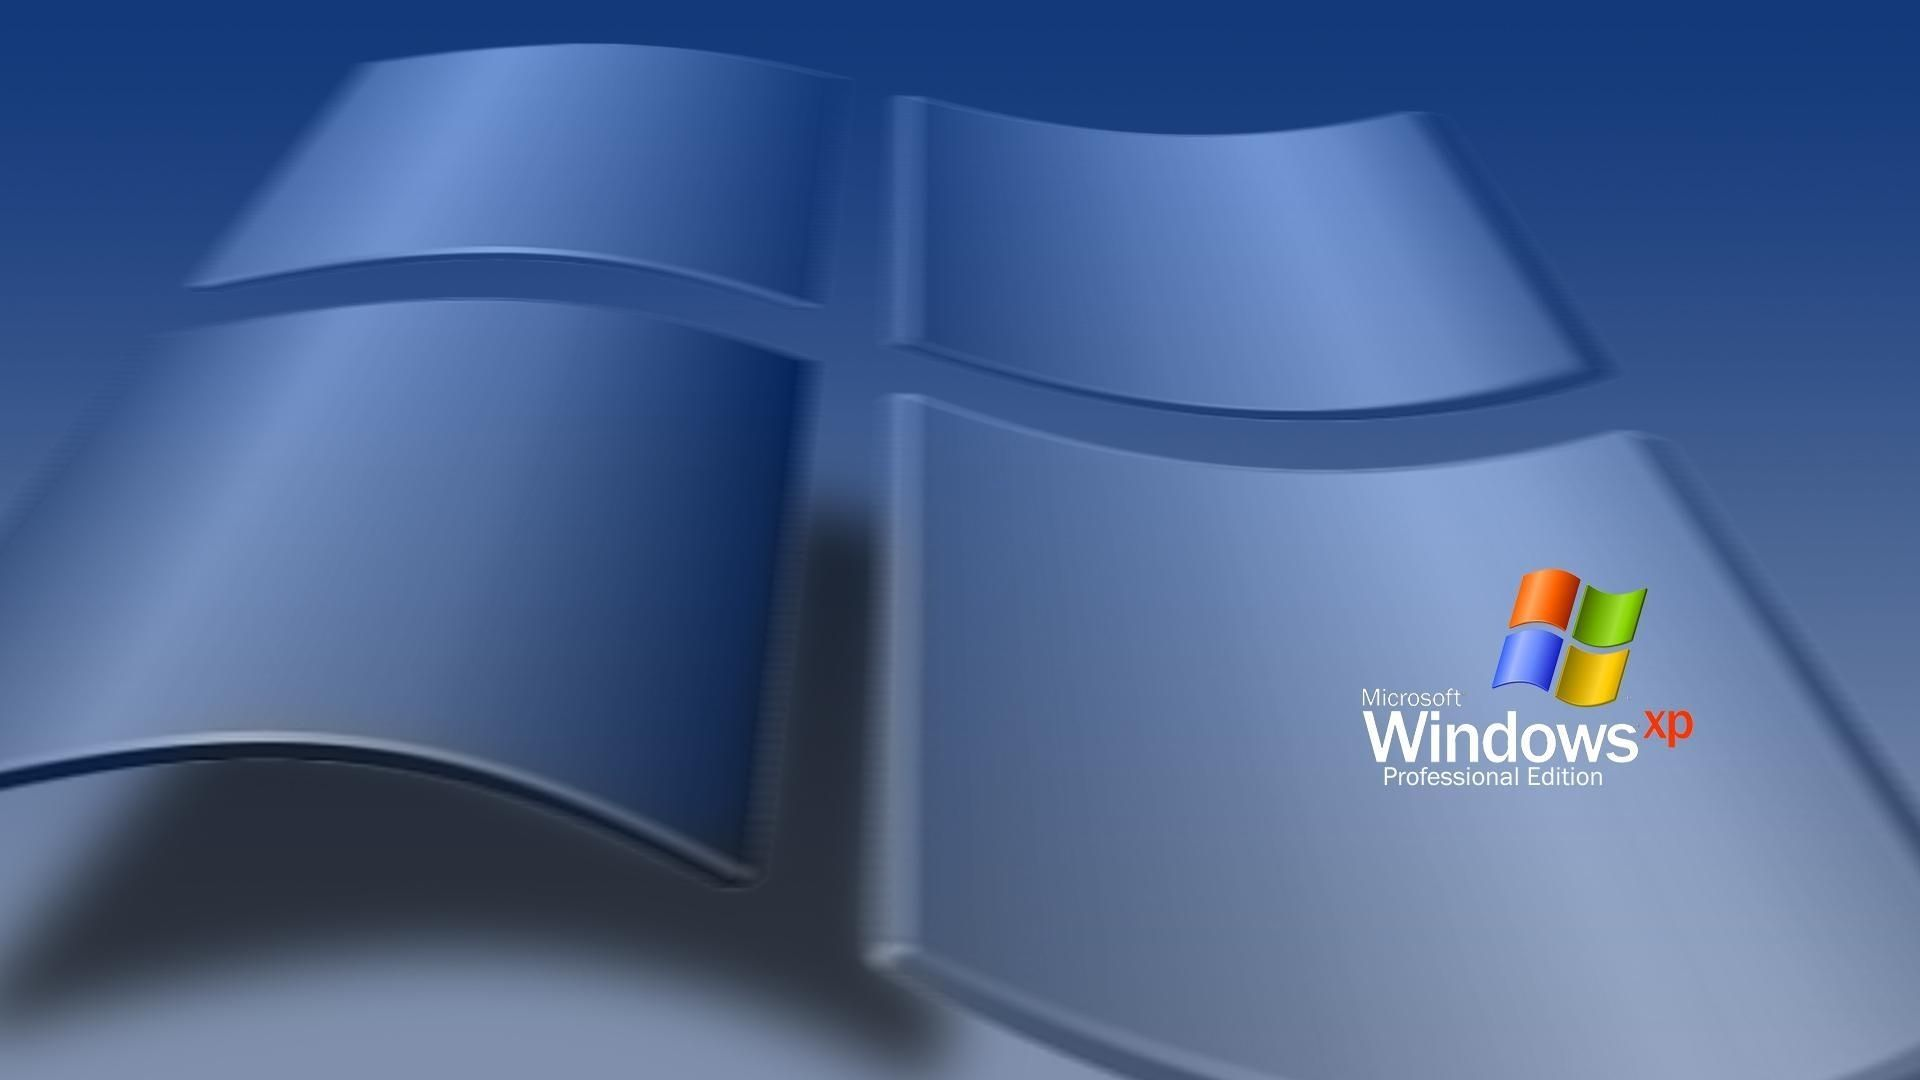 10 Top Windows Xp Professional Wallpaper Full Hd 1080p For Pc